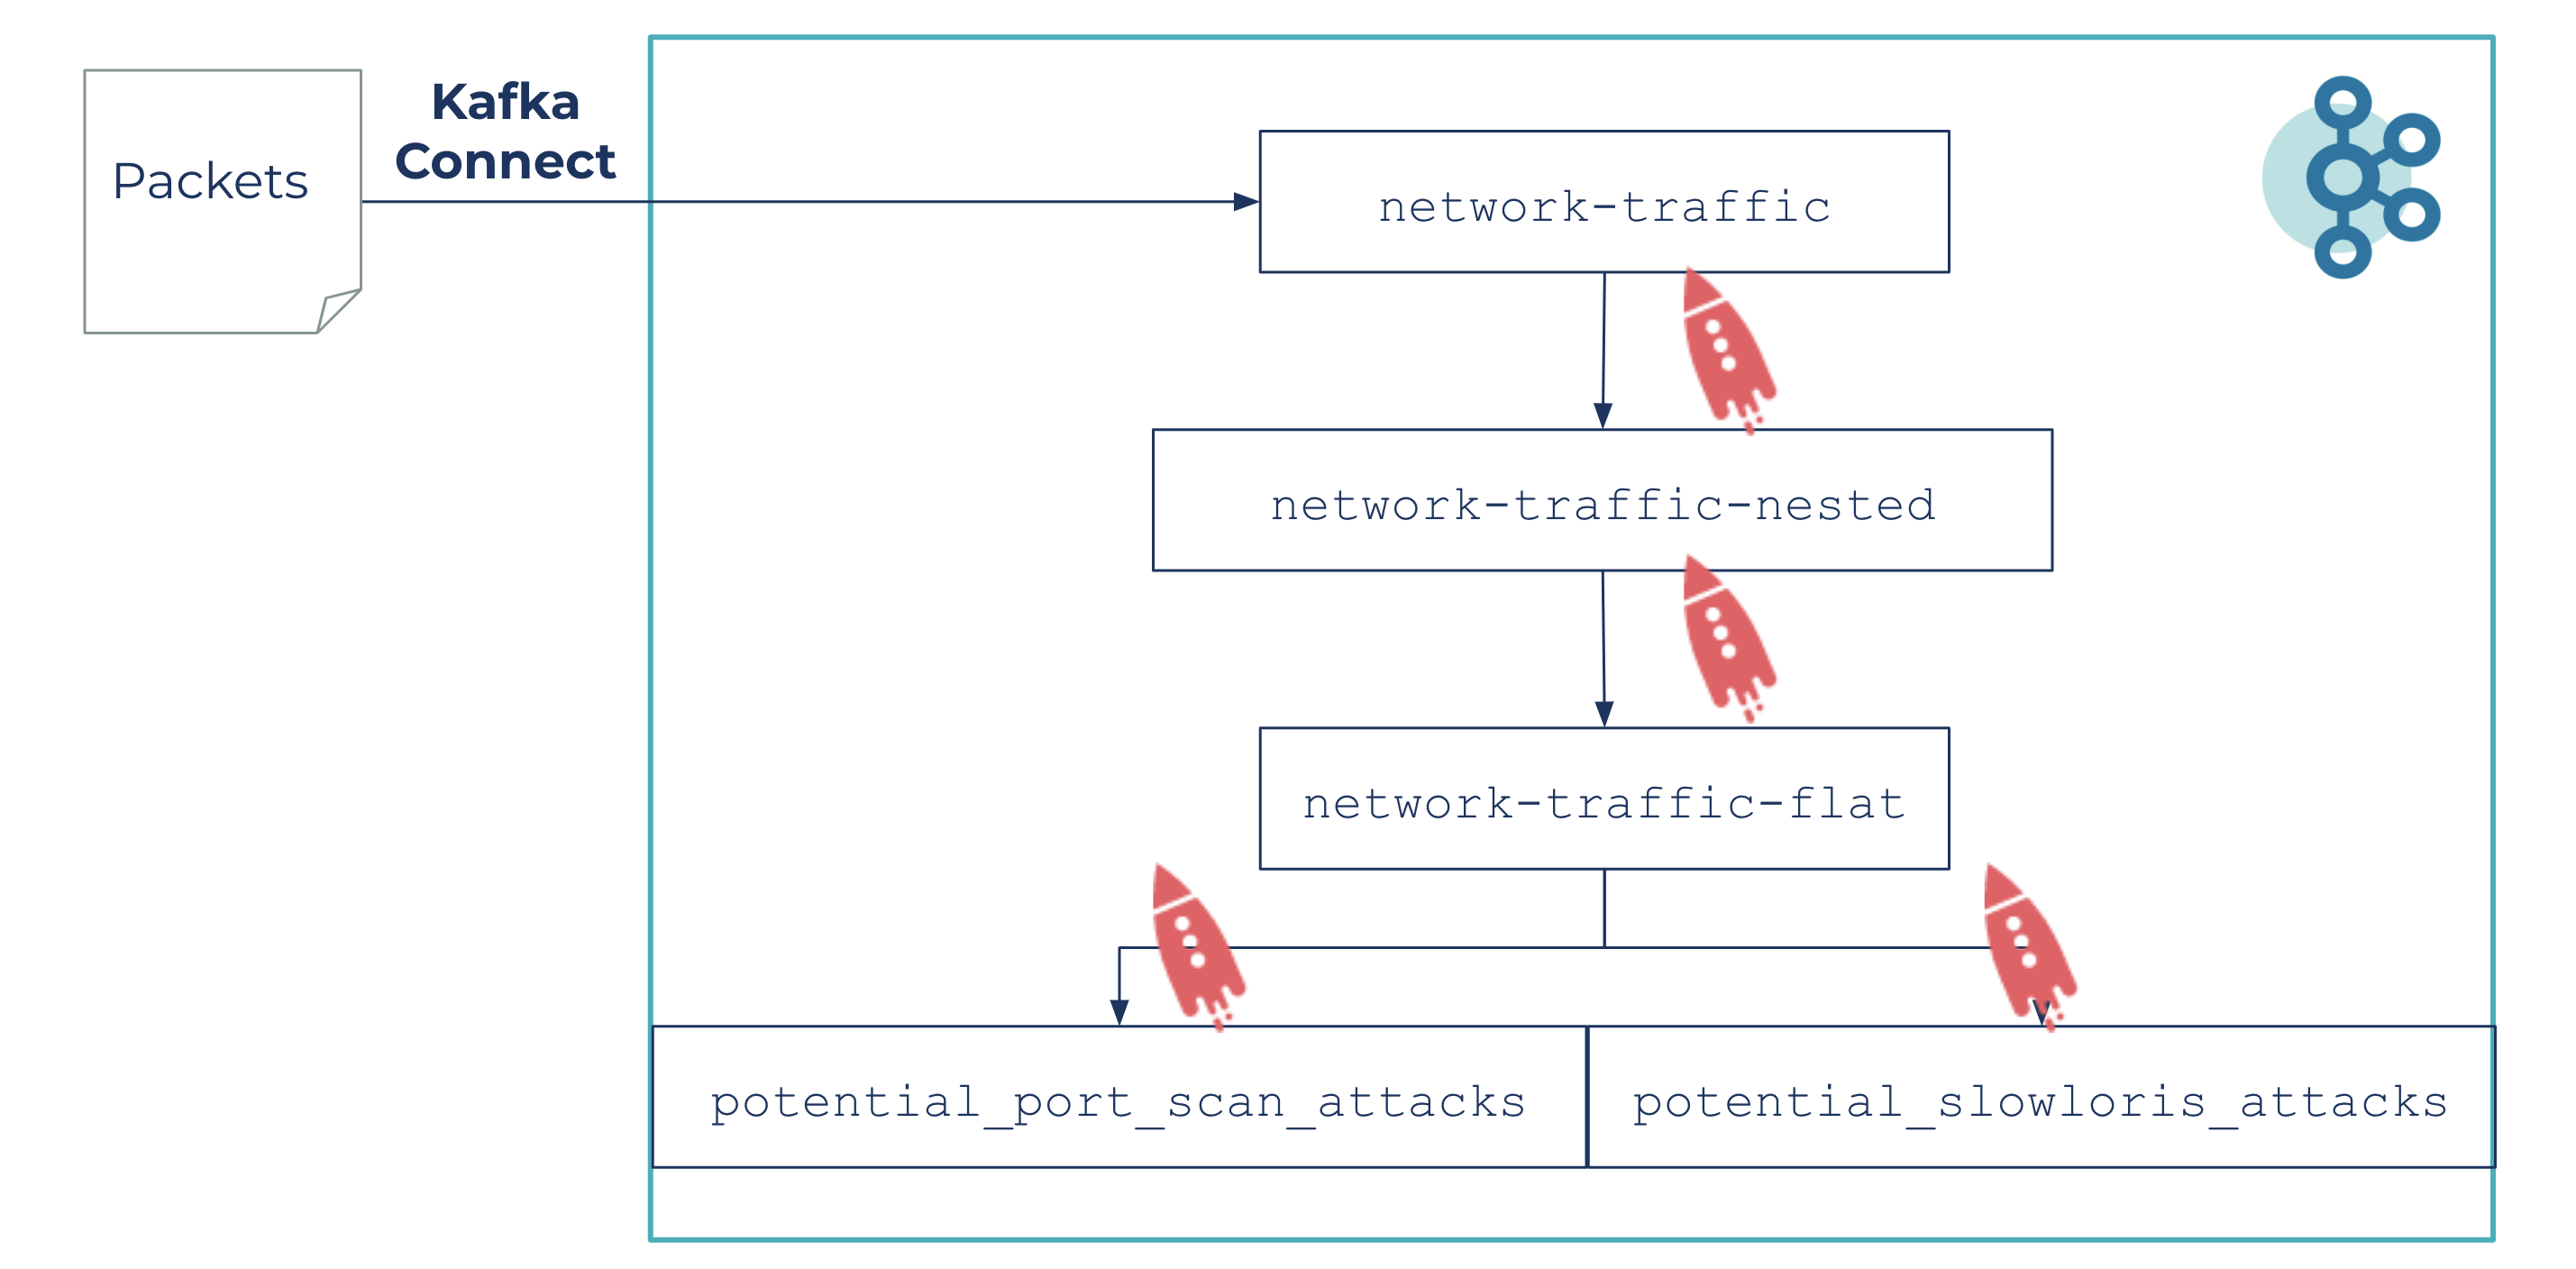 Packets | Kafka Connect | Network Traffic